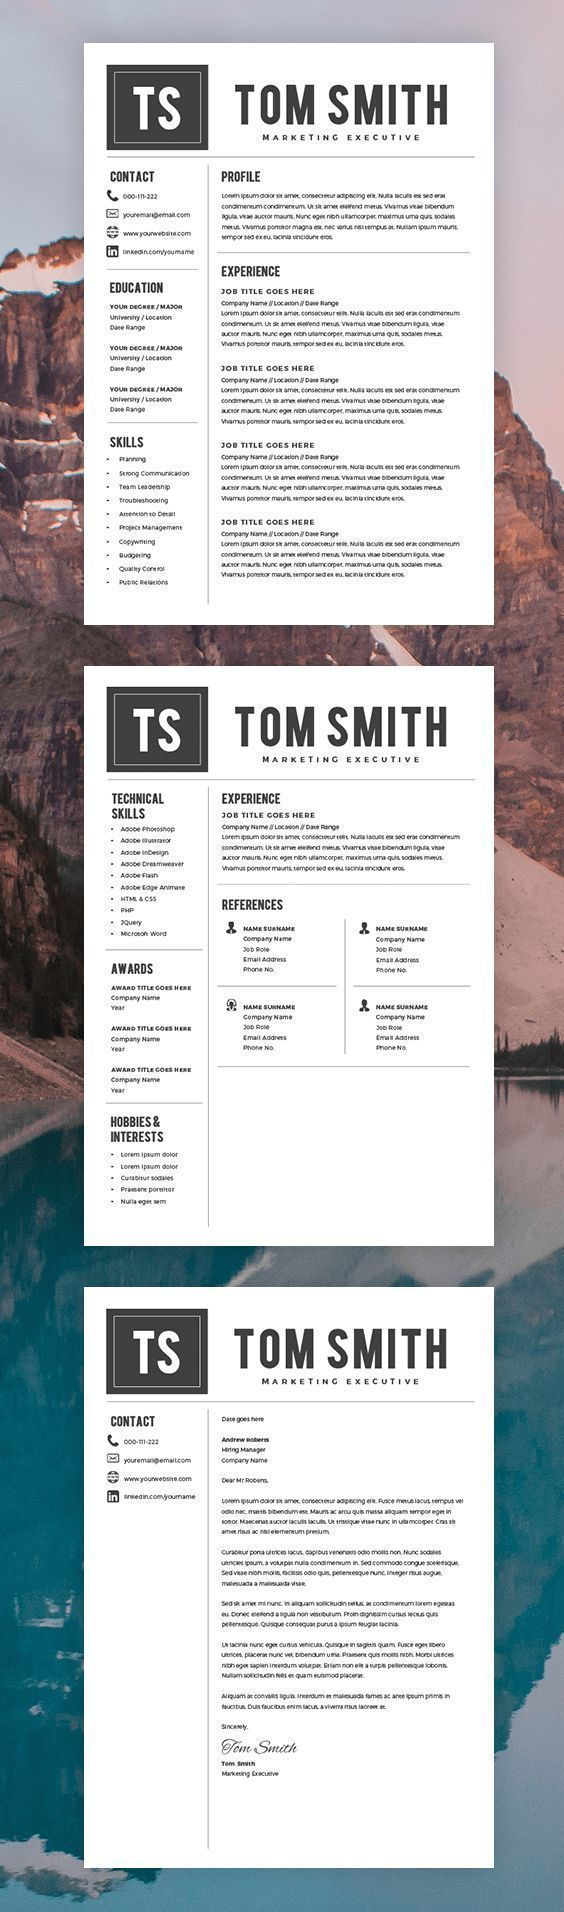 Cv Templates Pdf%0A Modern Resume Template  Free Cover Letter  CV Template  MS Word on Mac